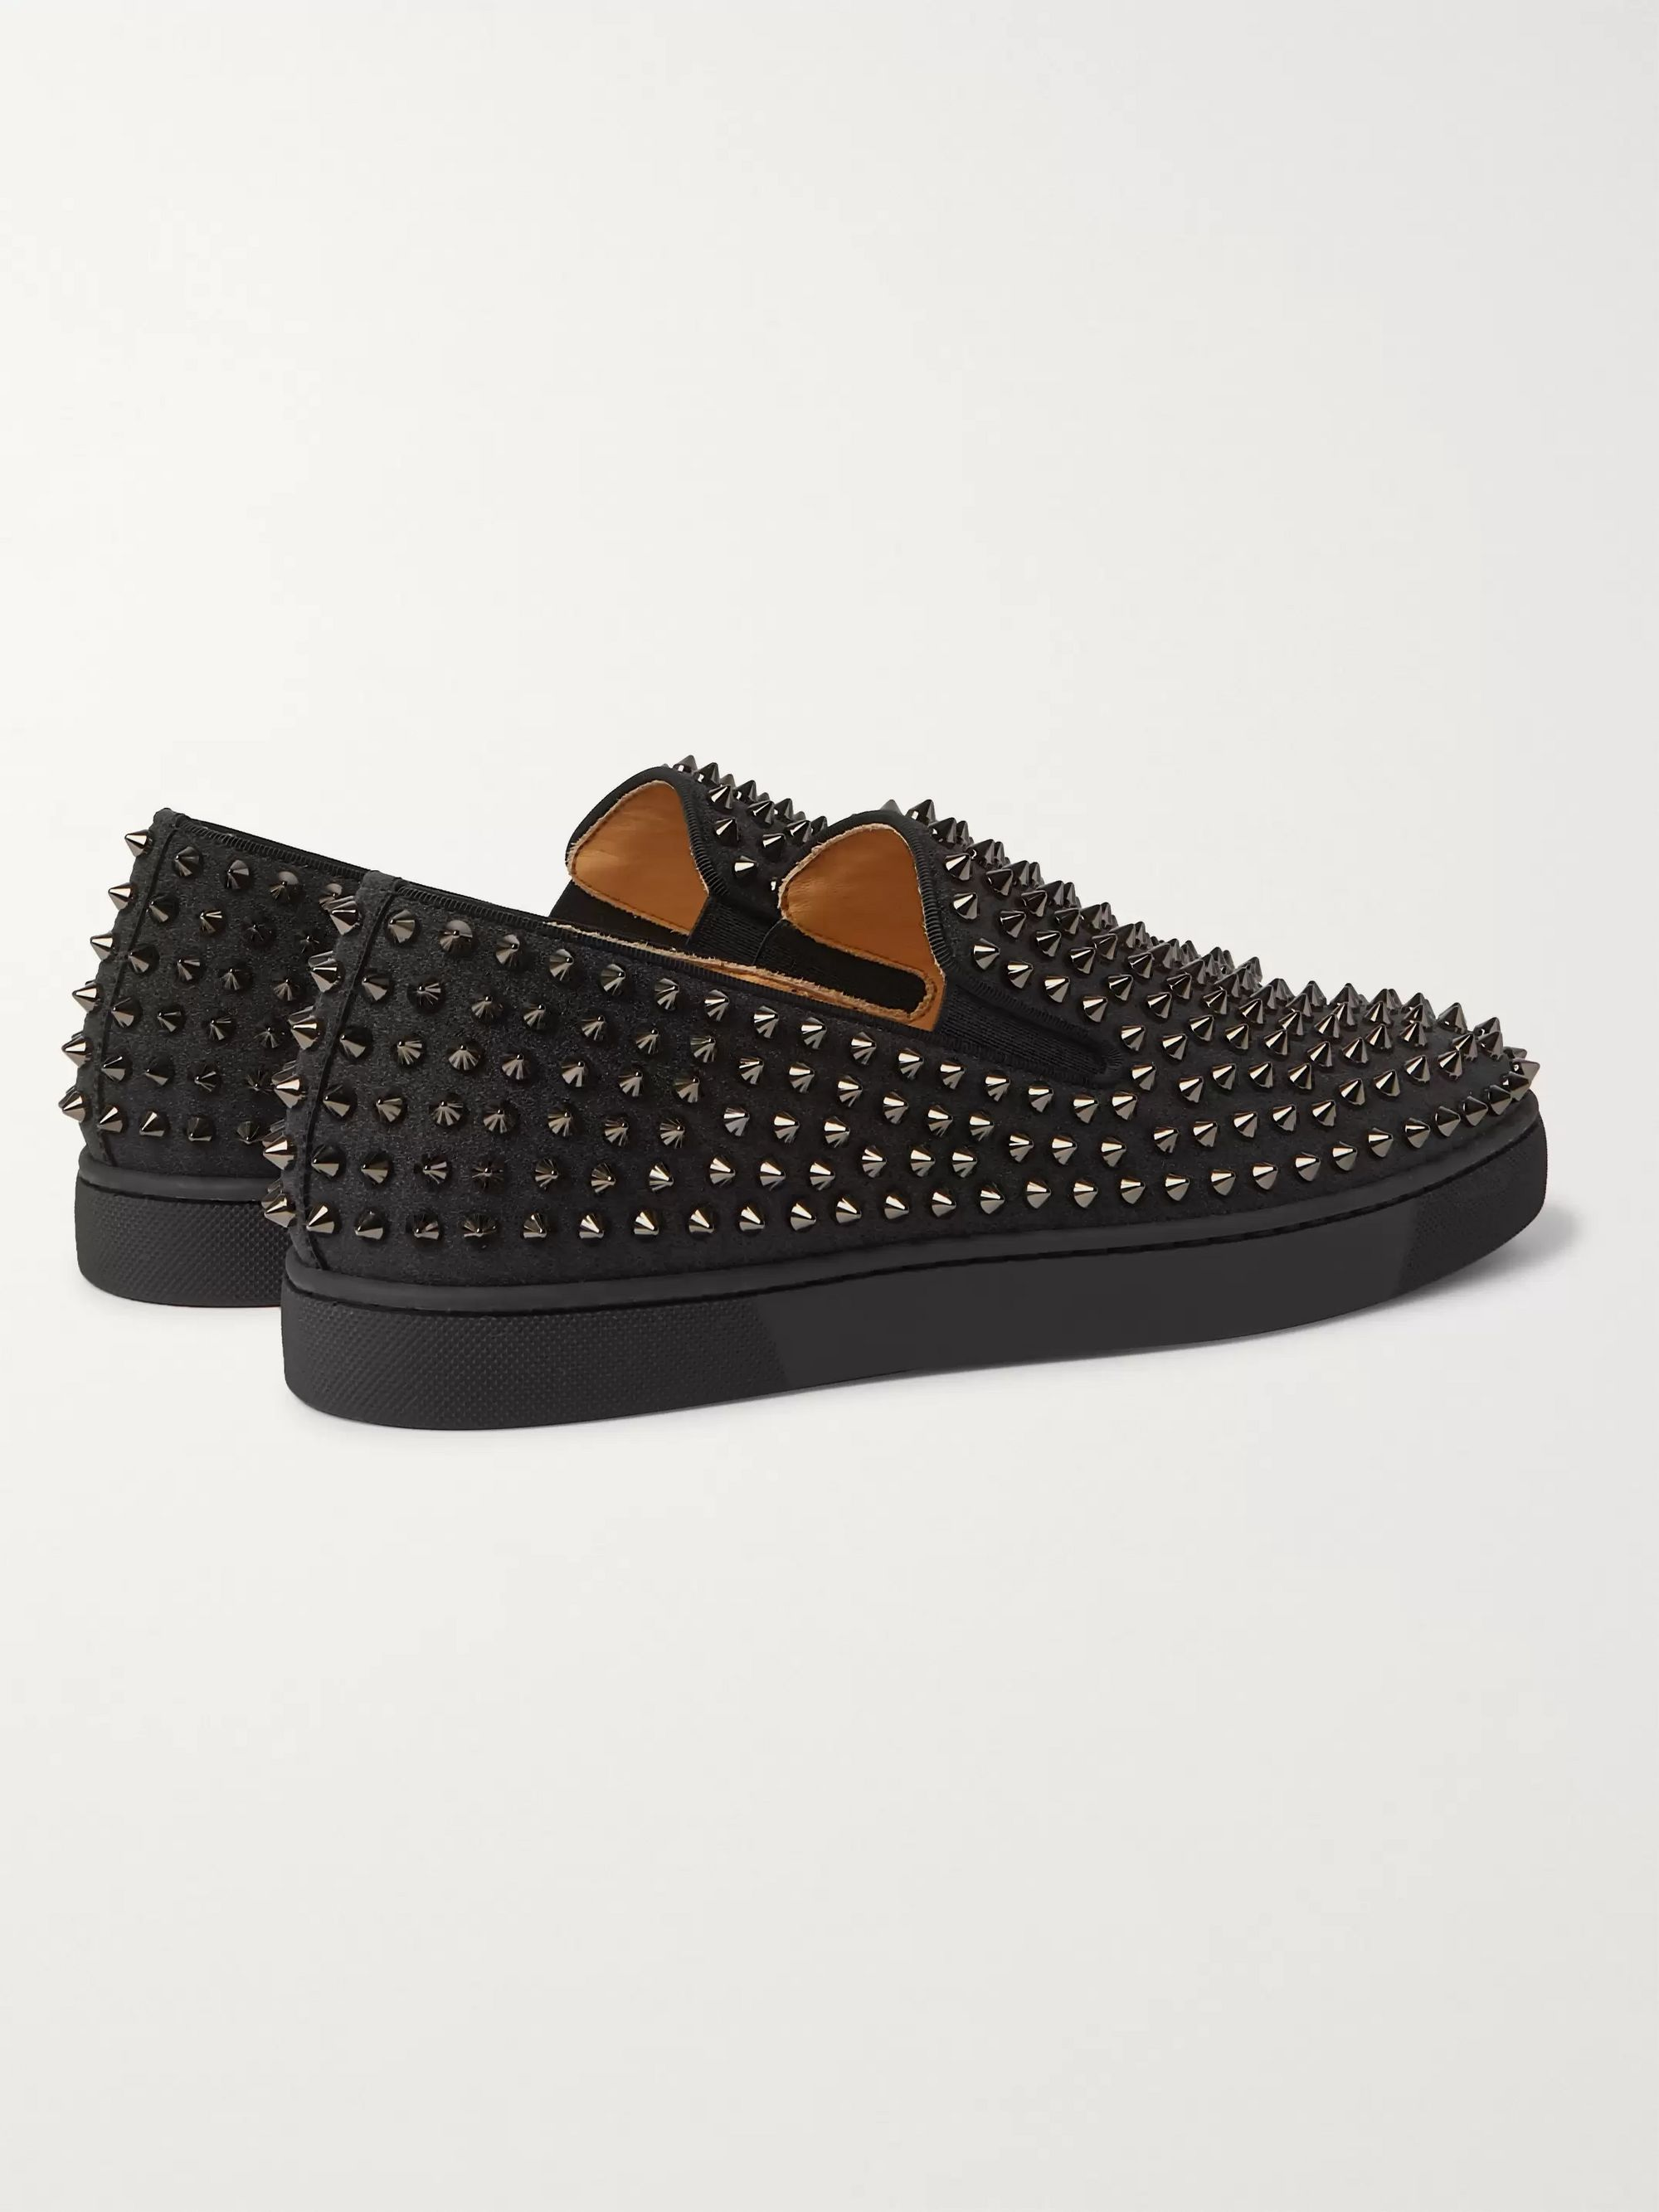 Christian Louboutin Roller-Boat Studded Glittered Leather Slip-On Sneakers